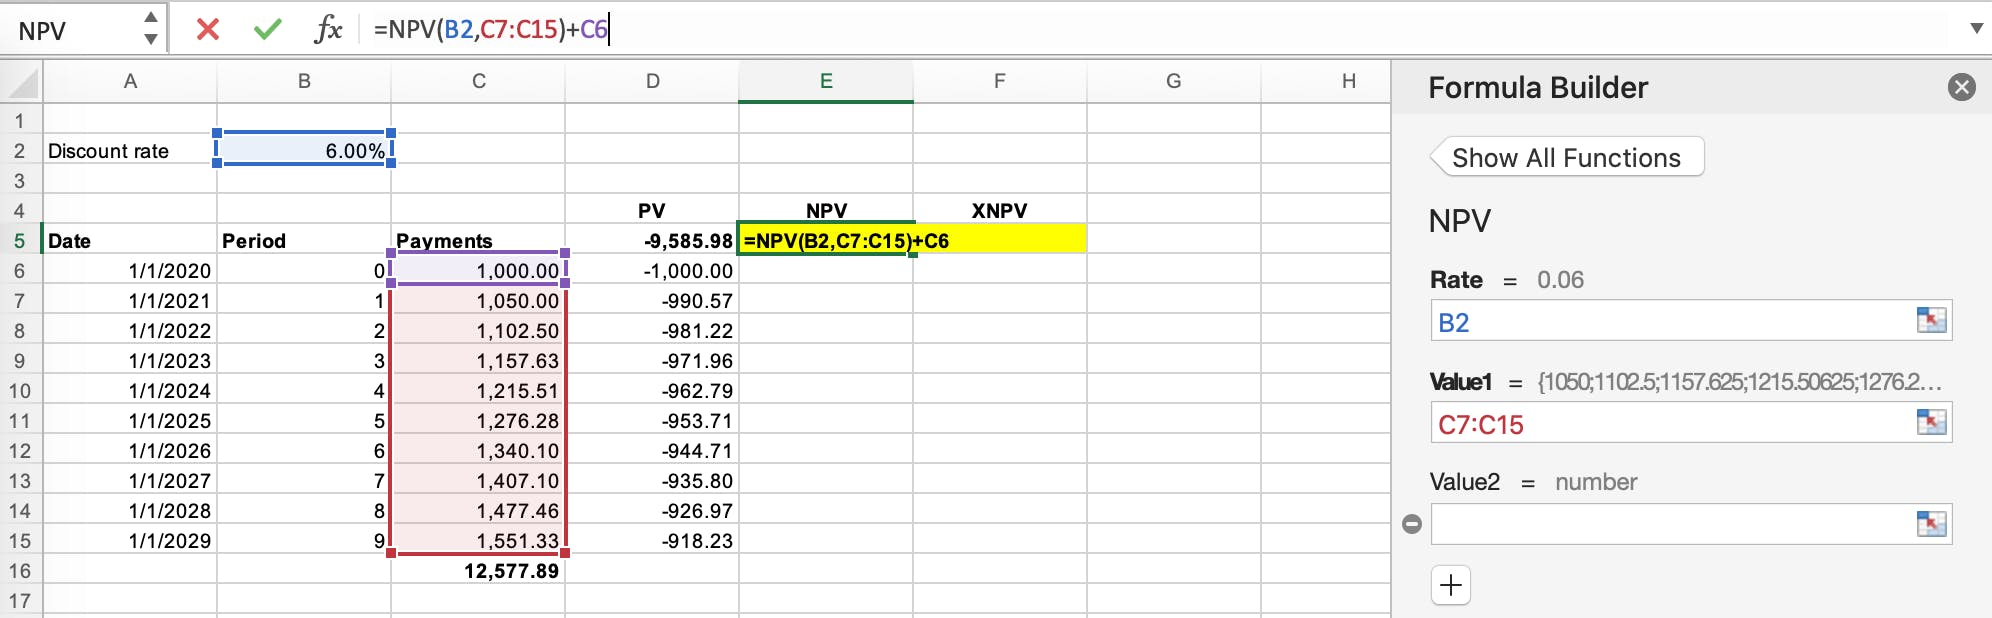 NPV Lease accounting example calculated in excel for ASC 842 and IFRS 16